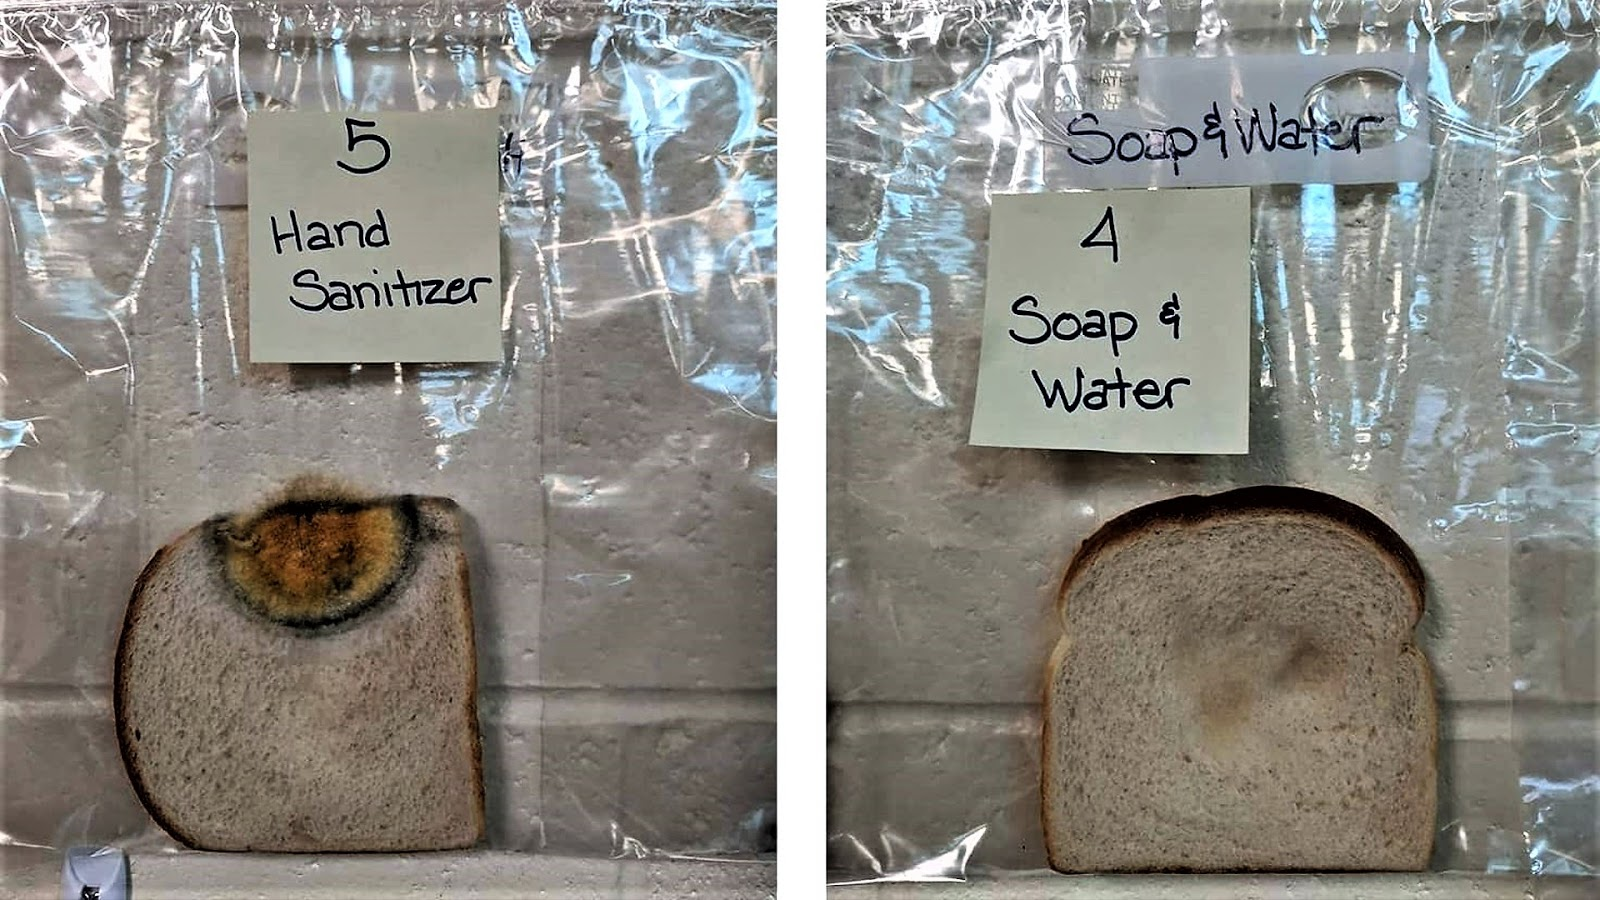 On the left is a slice of bread that the children touched after hand disinfection. On the right is a slice that was touched by students who washed their hands with soap.